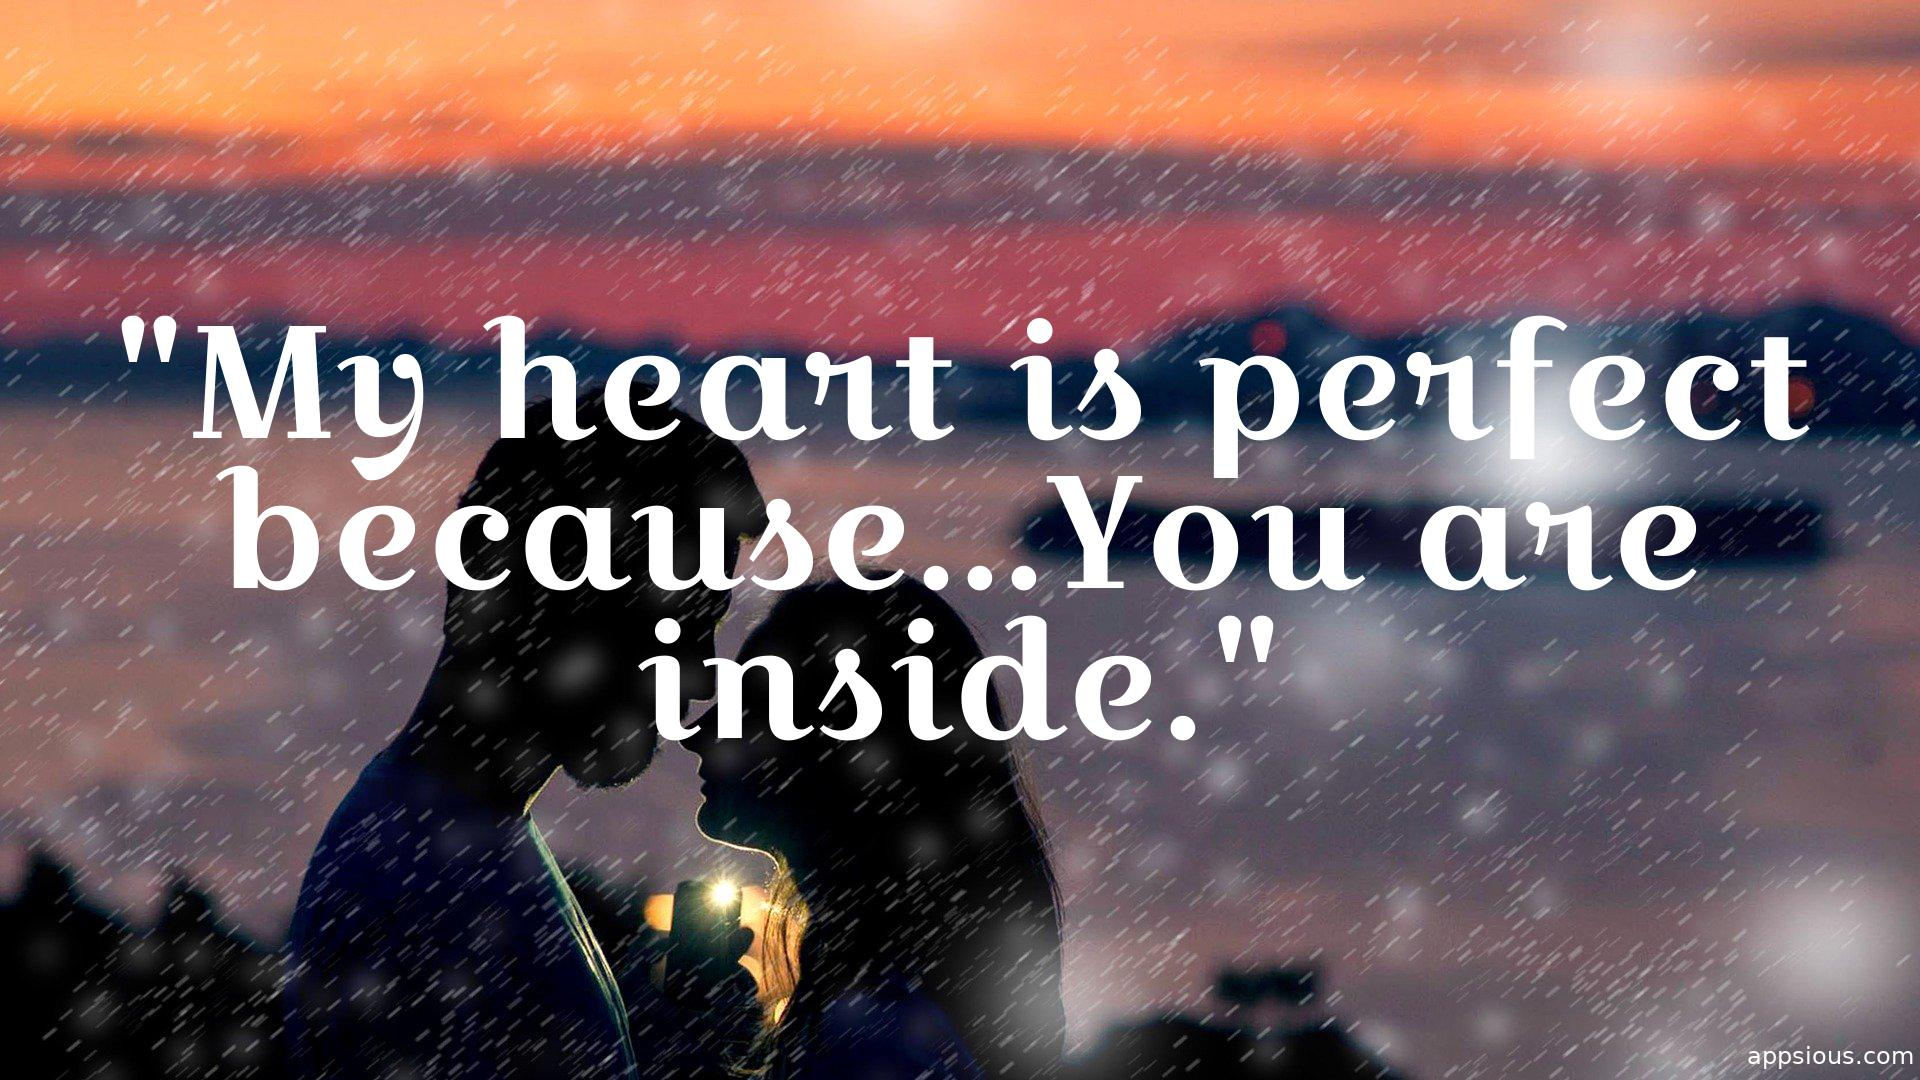 My heart is perfect because...You are inside.